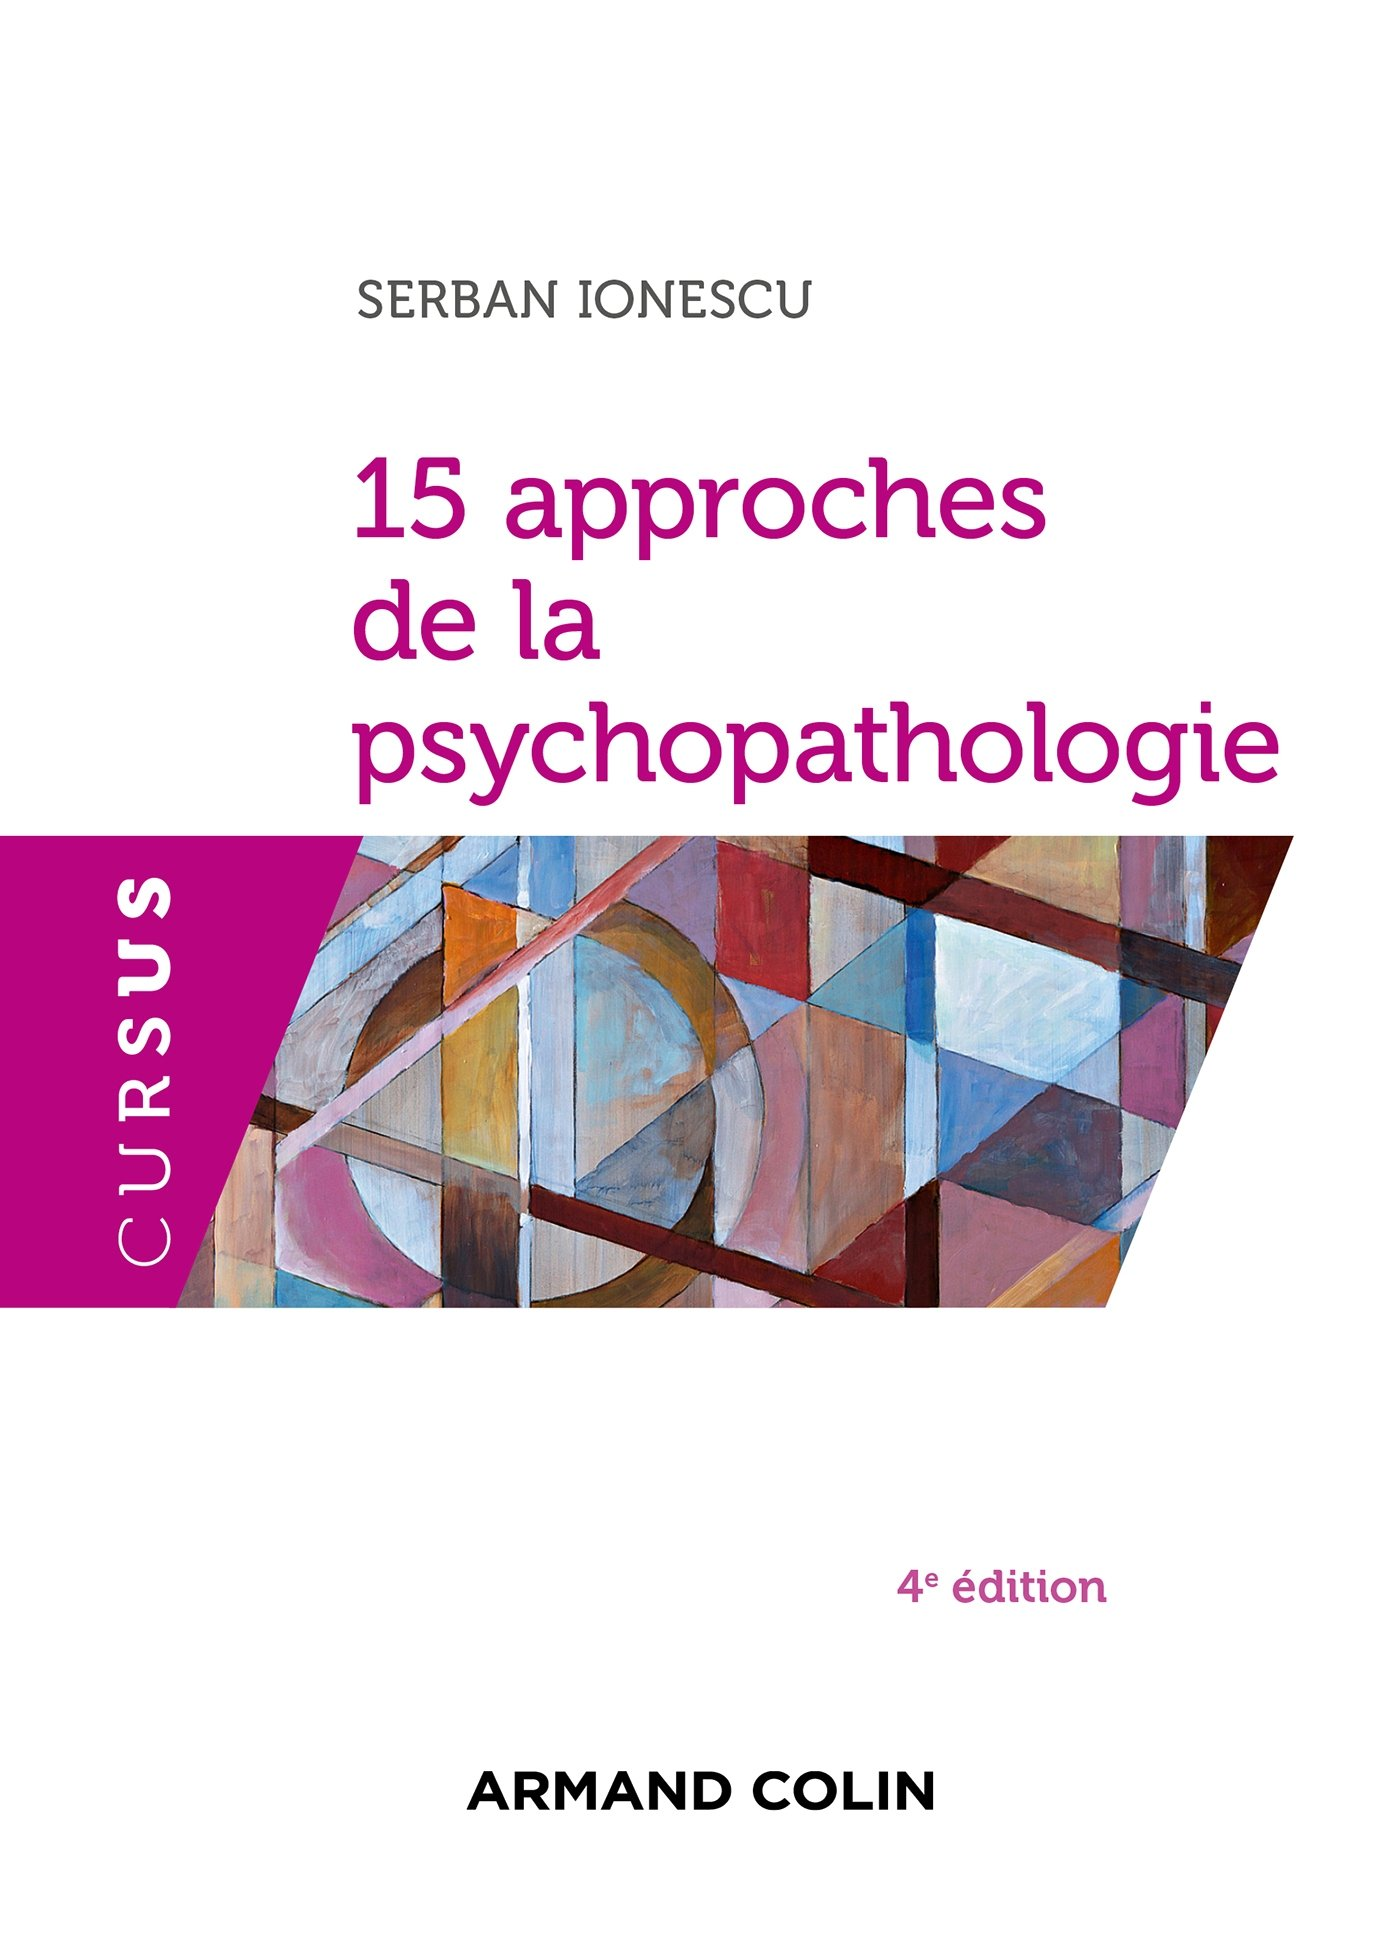 15 approches de la psychopathologie (4e édition): Serban Ionescu:  9782200602833: Amazon.com: Books